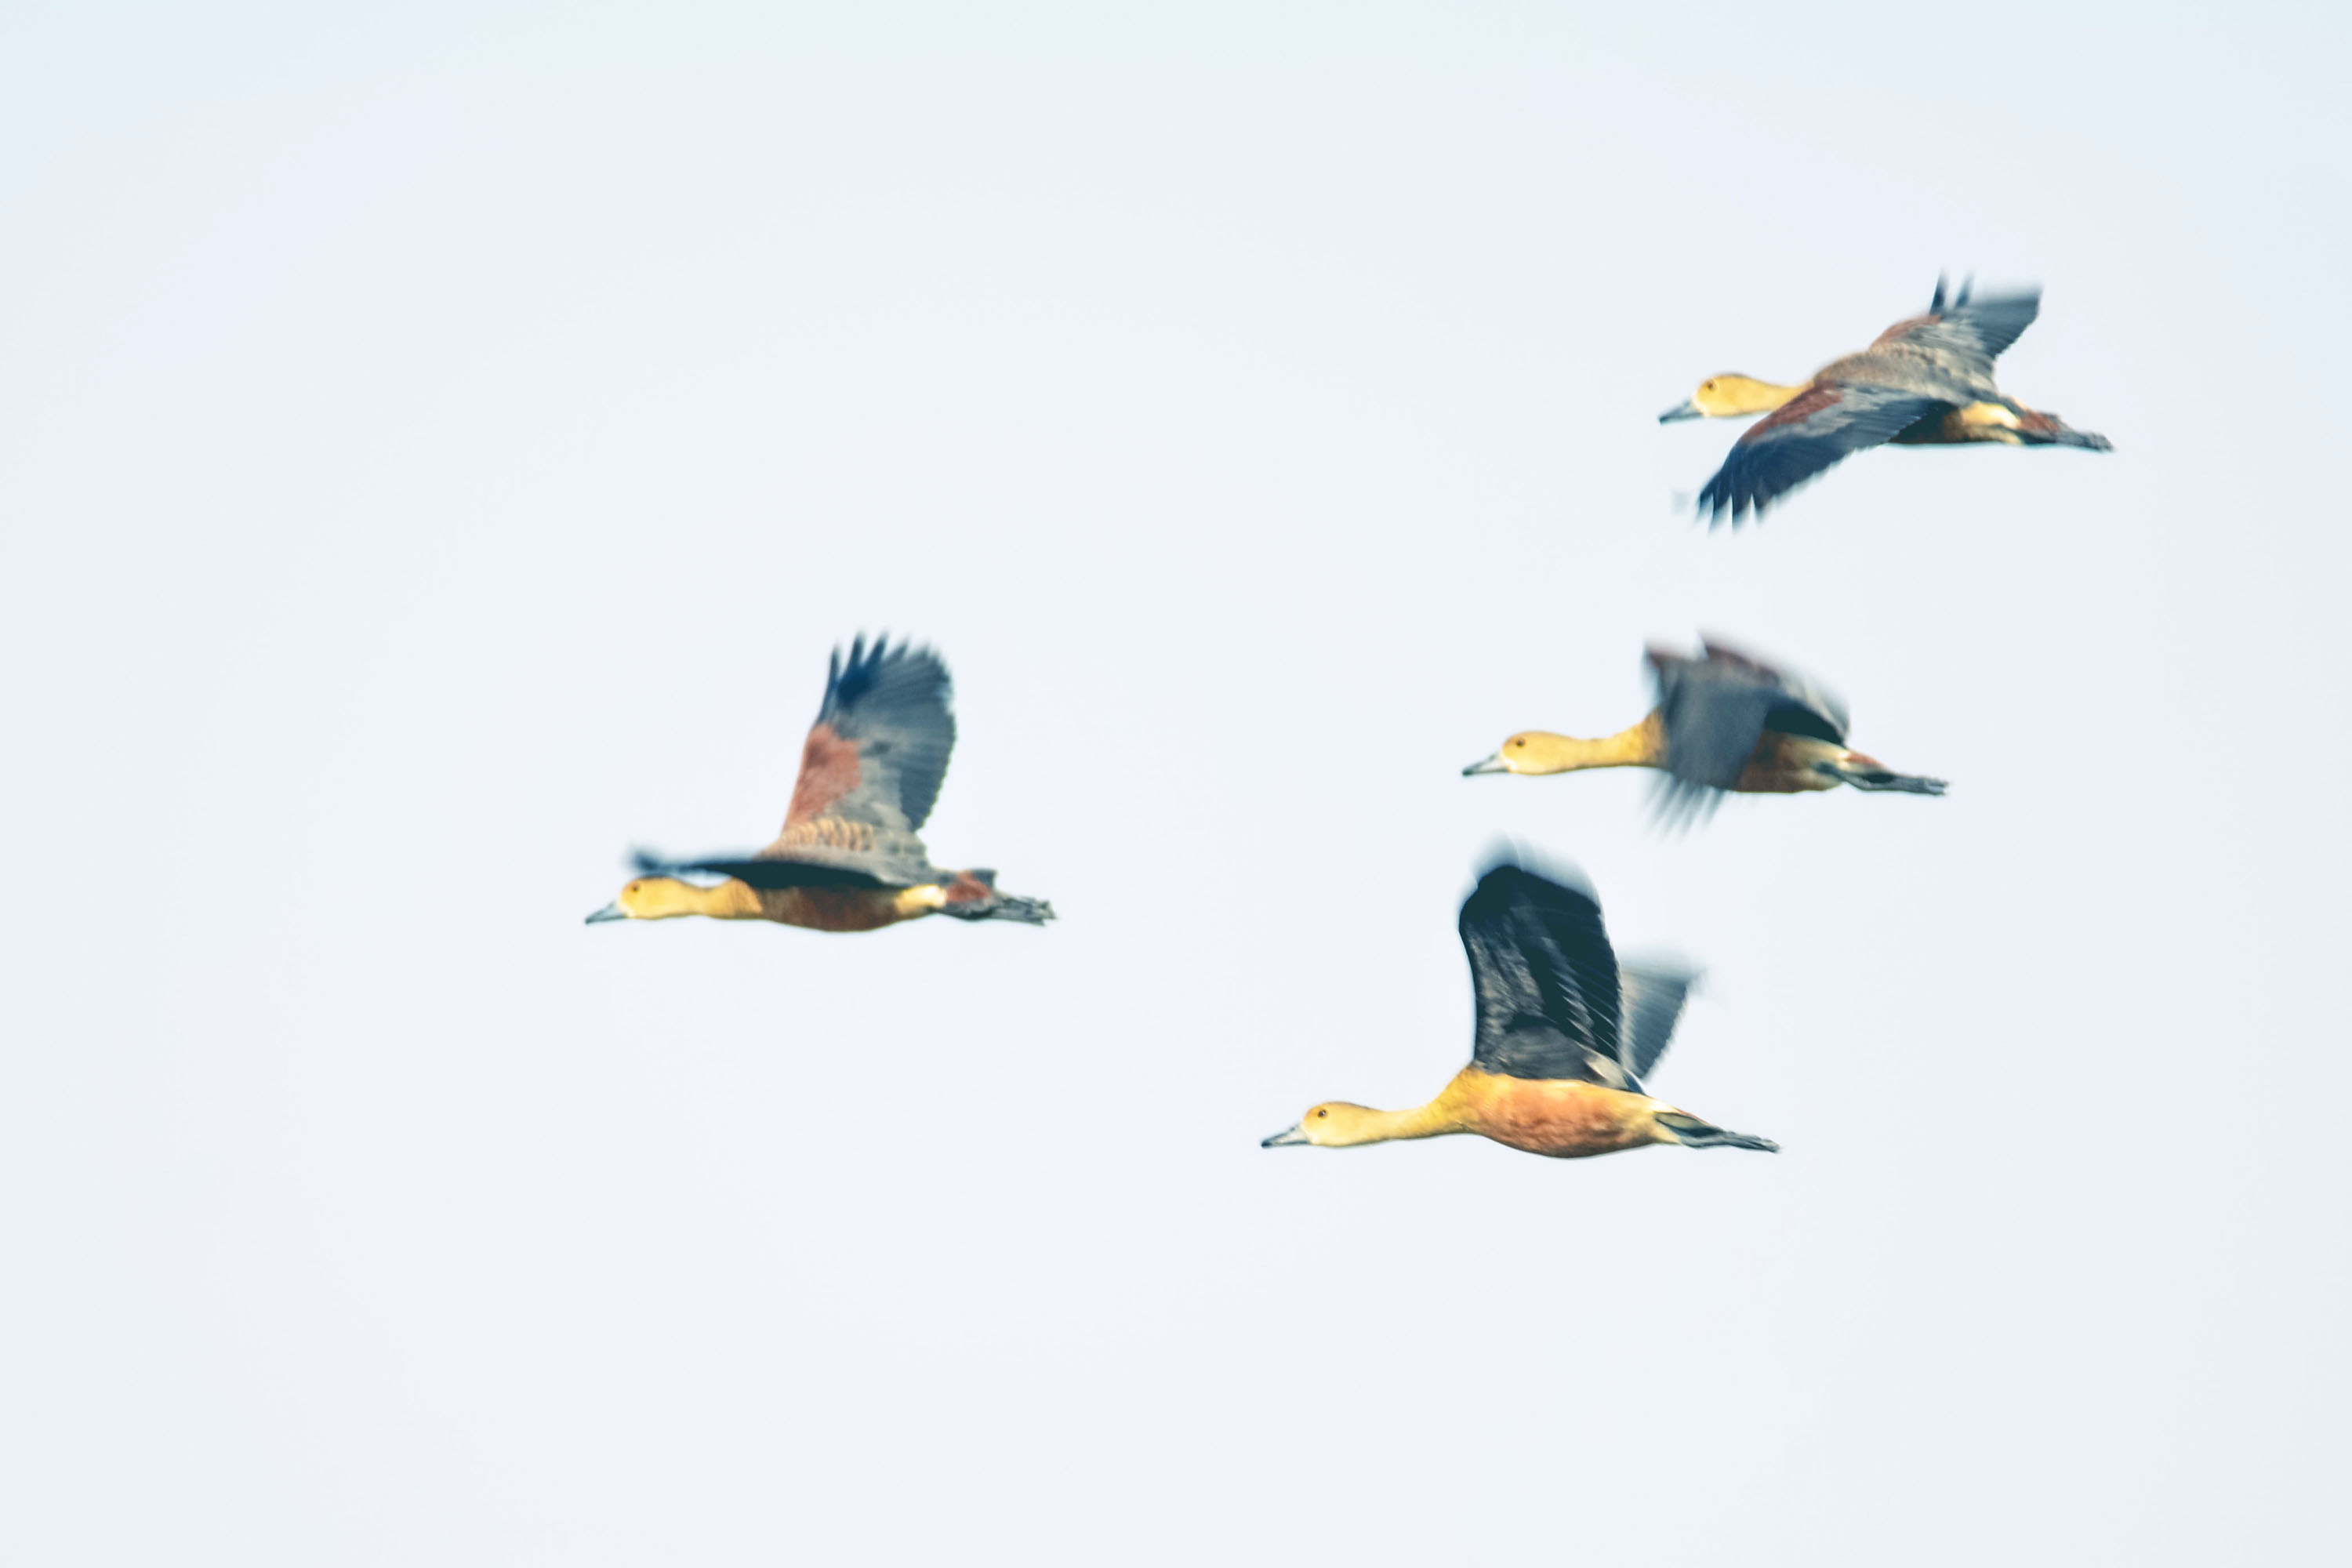 flying birds, free indian travel and stock photos